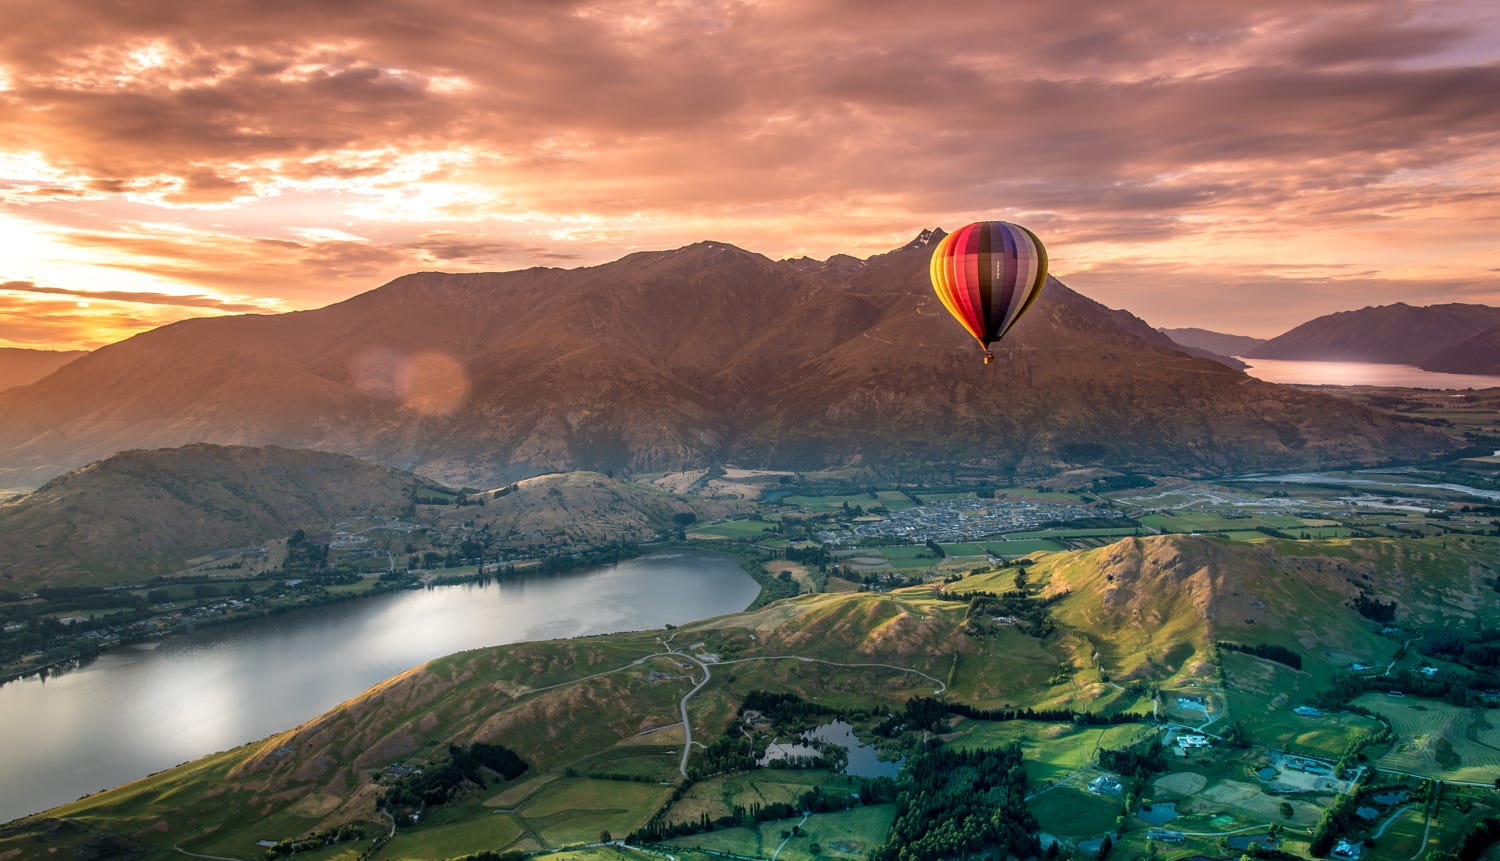 Queenstown, New Zealand - Hot Air Balloon